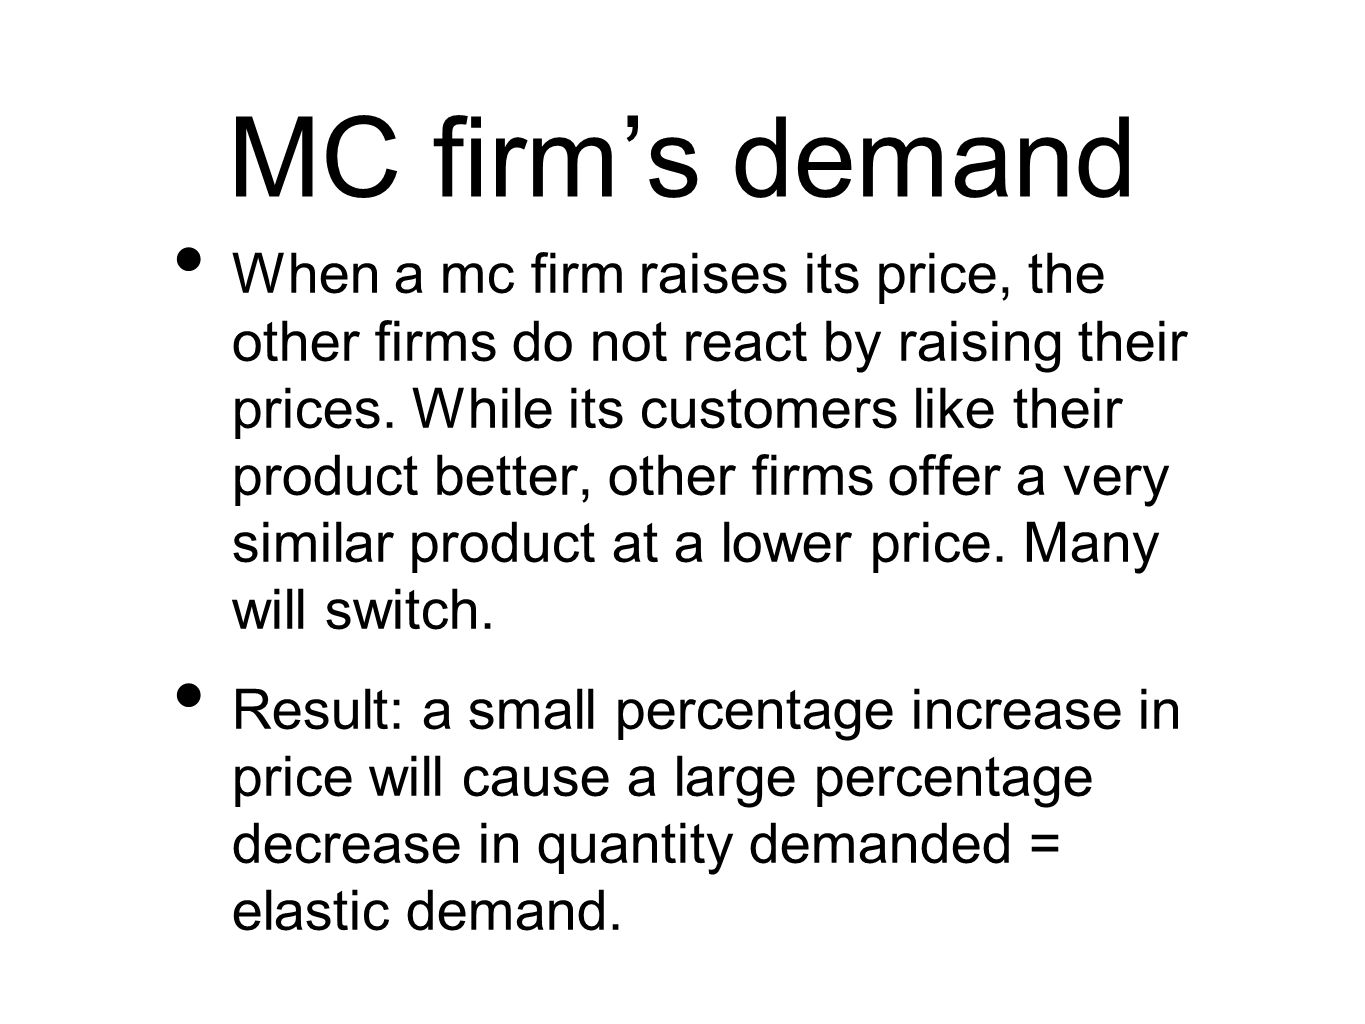 MC firm's demand When a mc firm raises its price, the other firms do not react by raising their prices.